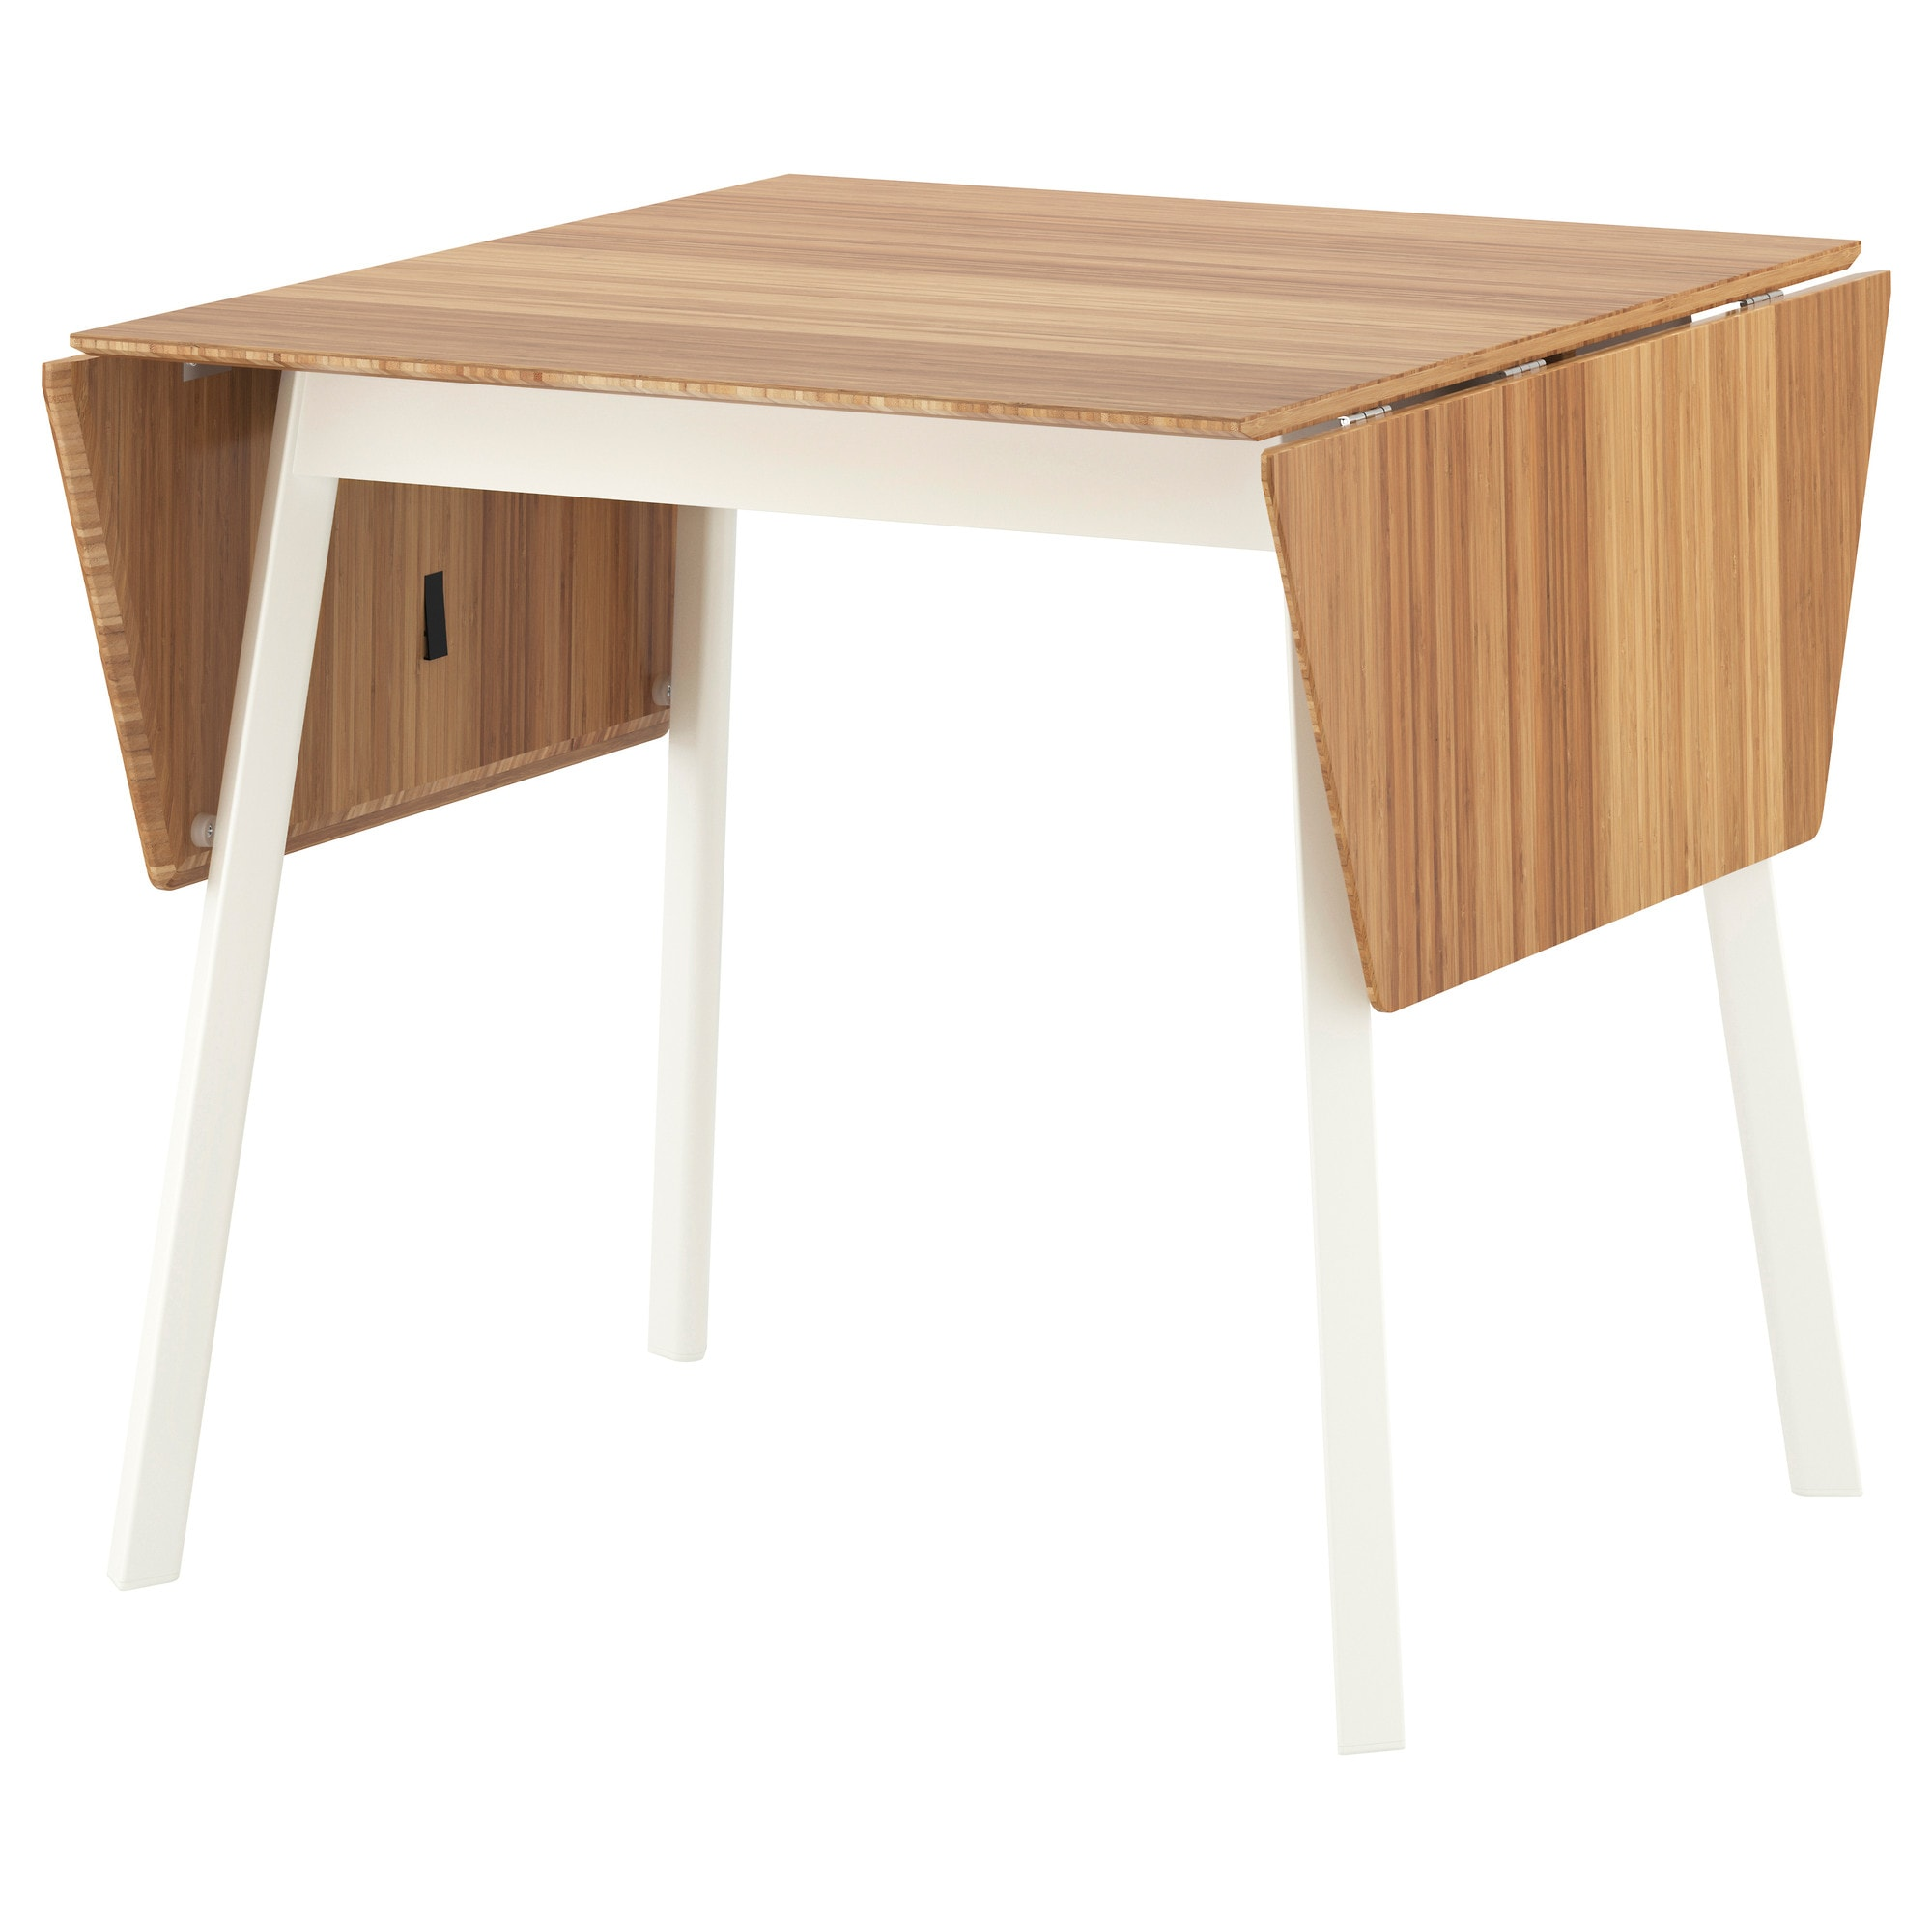 IKEA PS 2012 drop-leaf table, bamboo, white Length: 41 3/